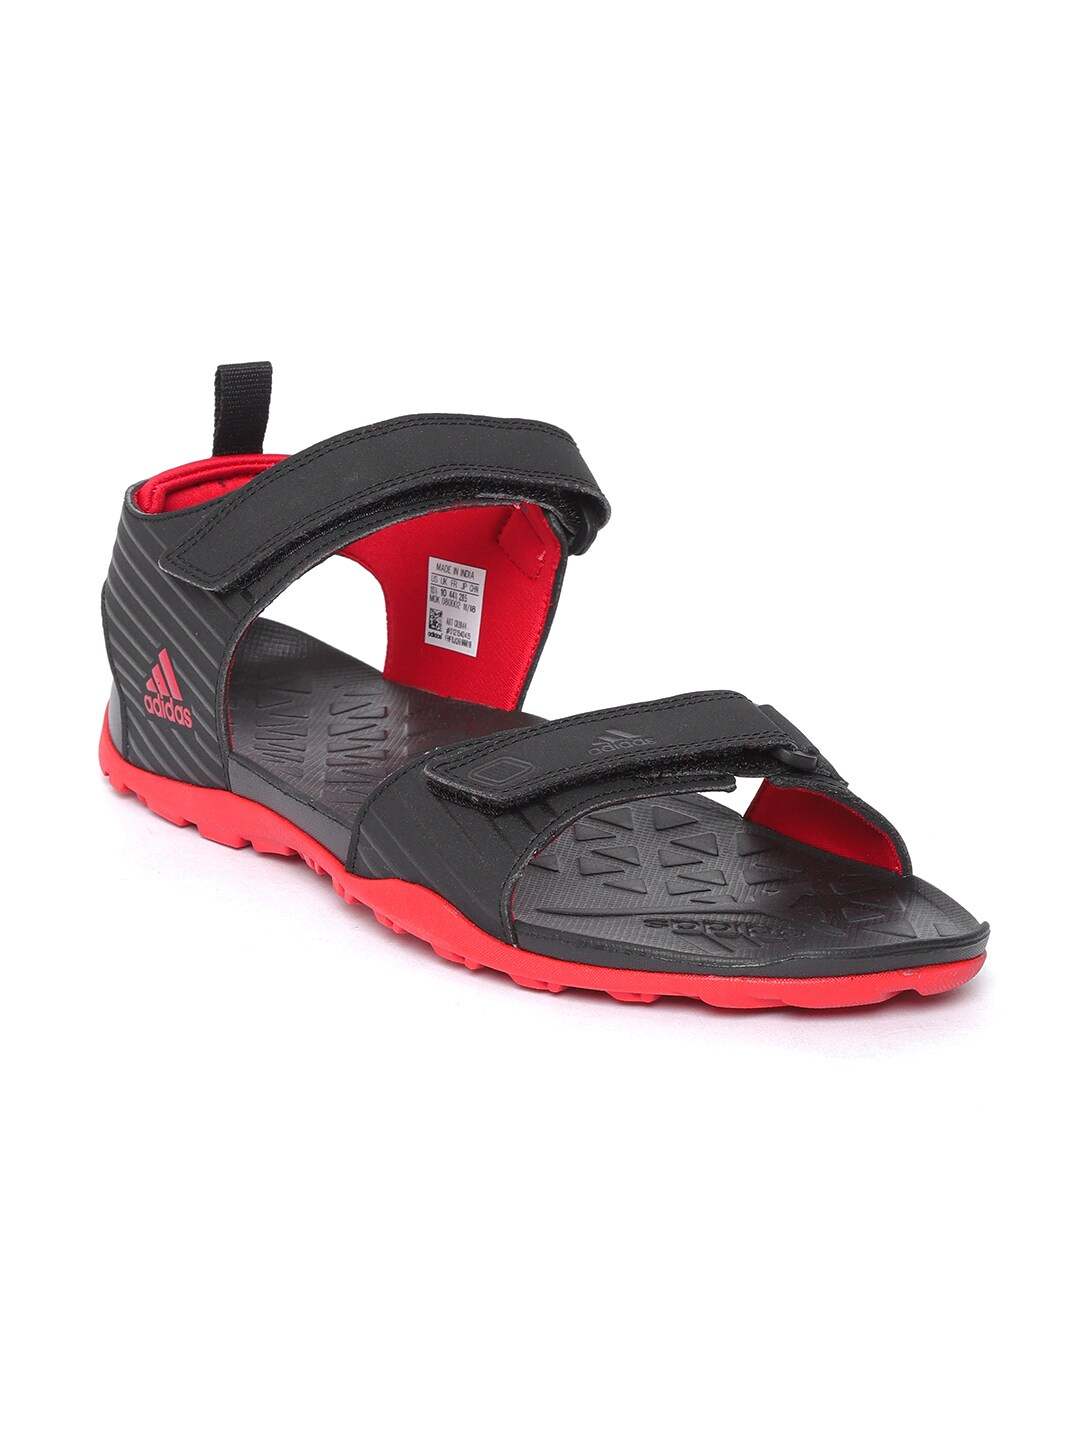 b1d6ea098 Adidas Men Tracksuits Sandals - Buy Adidas Men Tracksuits Sandals online in  India